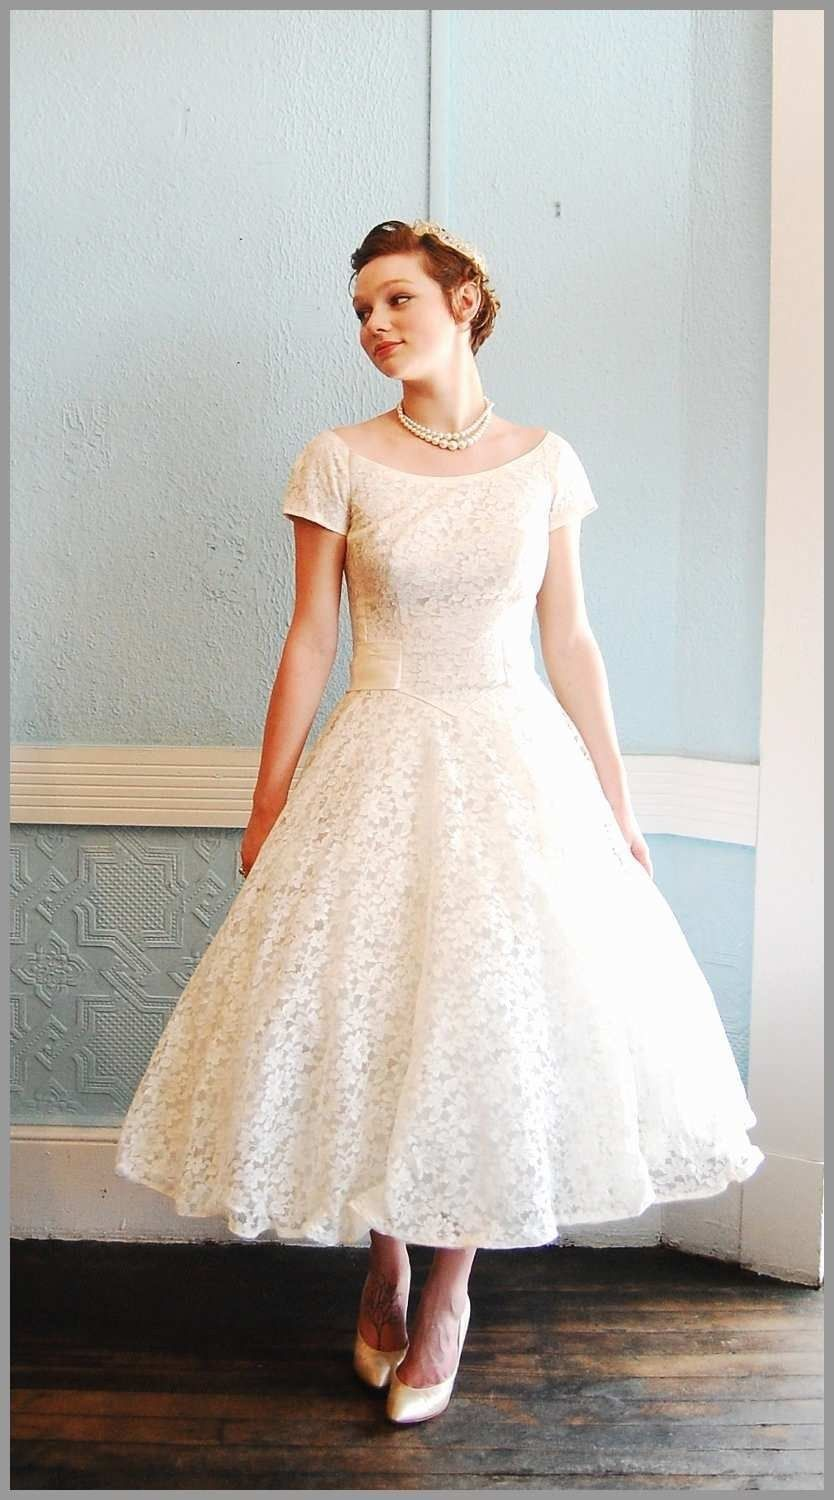 27 Great Photo Of Wedding Dress Patterns To Sew Figswoodfiredbistro Com Lace Tea Length Dress Short Wedding Dress Tea Length Wedding Dress [ 1500 x 834 Pixel ]